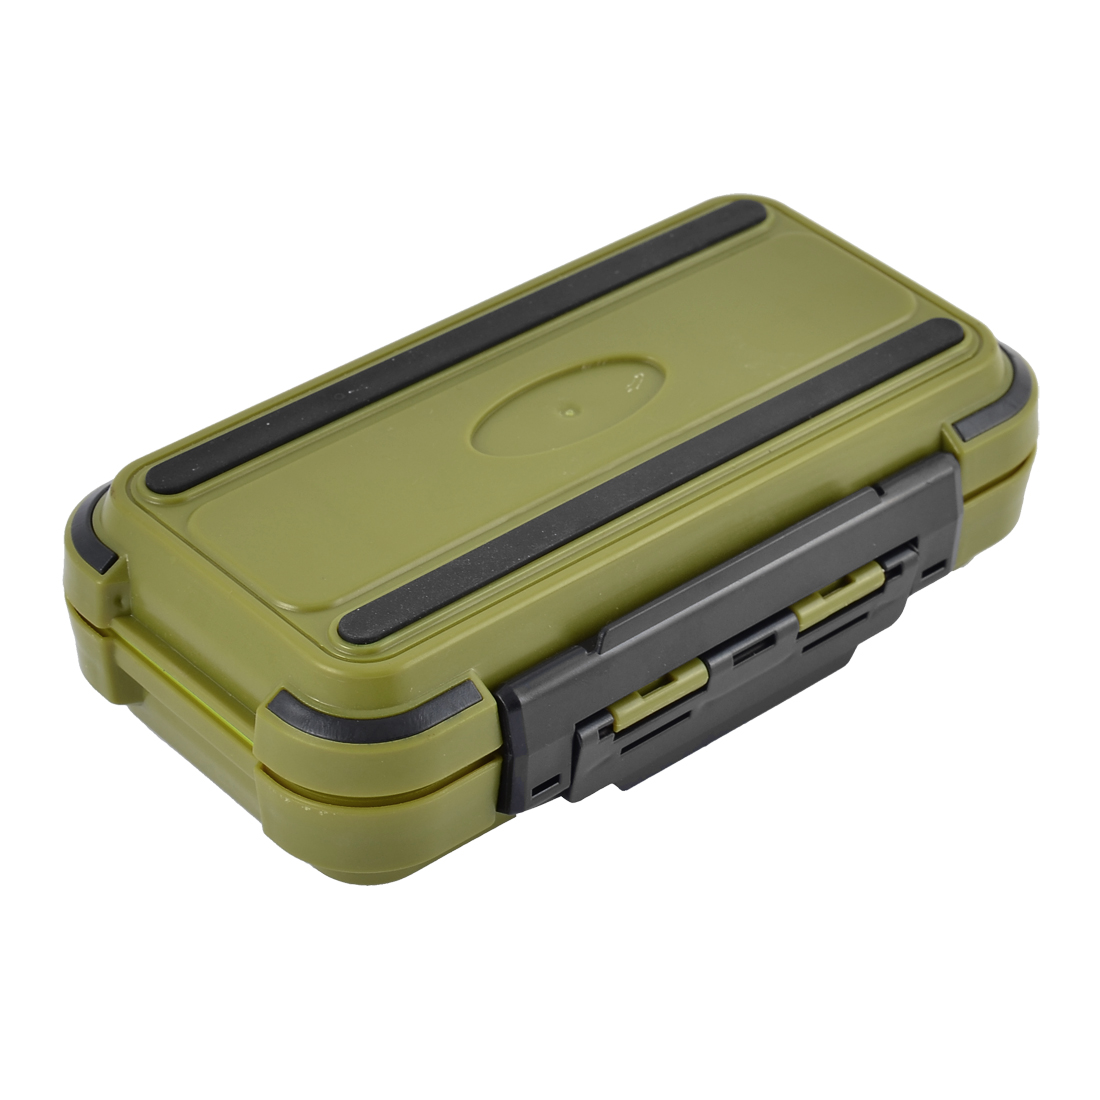 Fishing 24 Compartments Fish Hook Bait Storage Box Fishhook Holder Olive Green